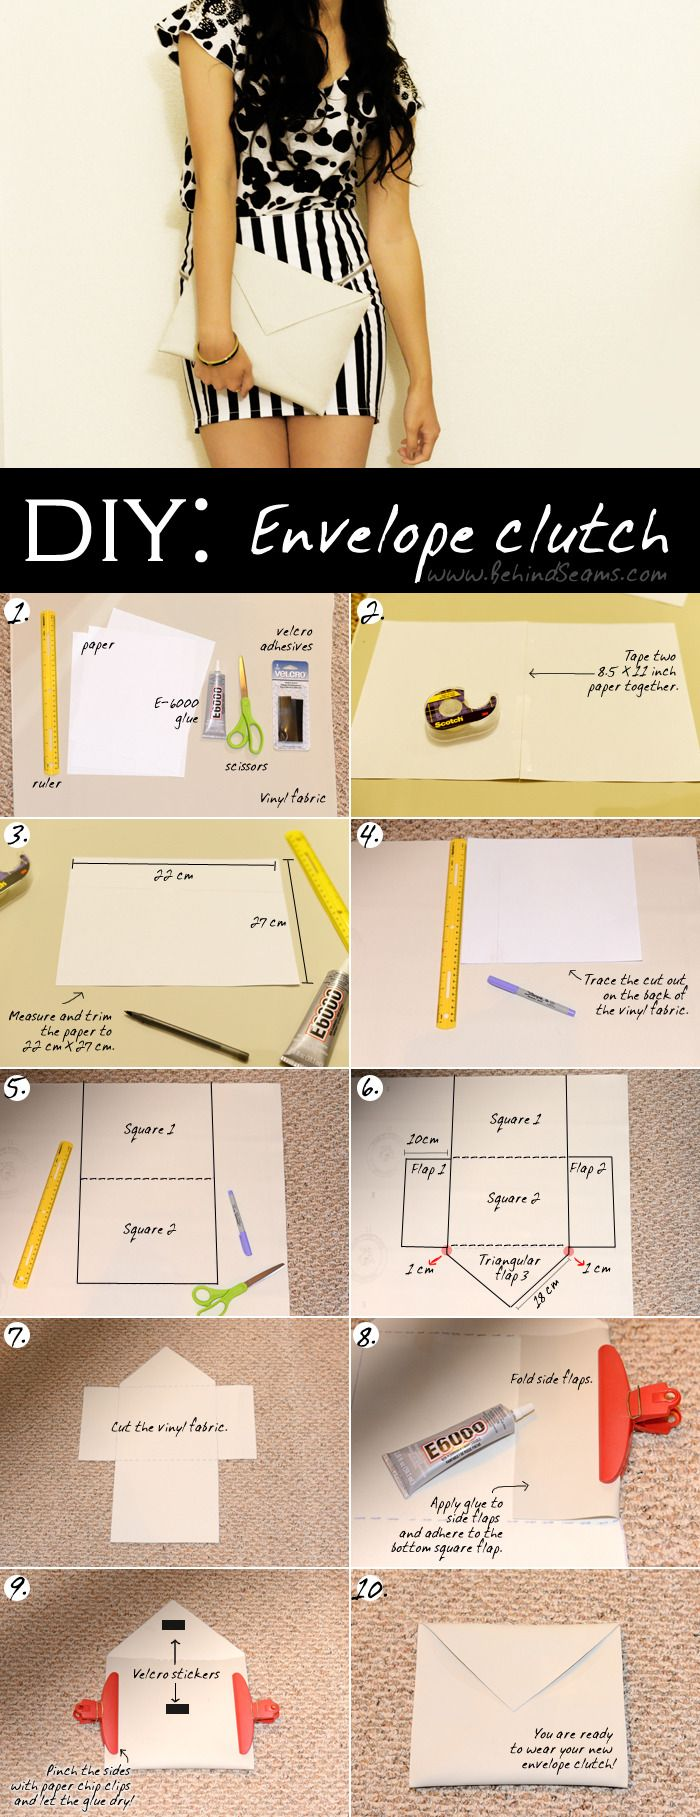 .: DIY: Envelope Clutch